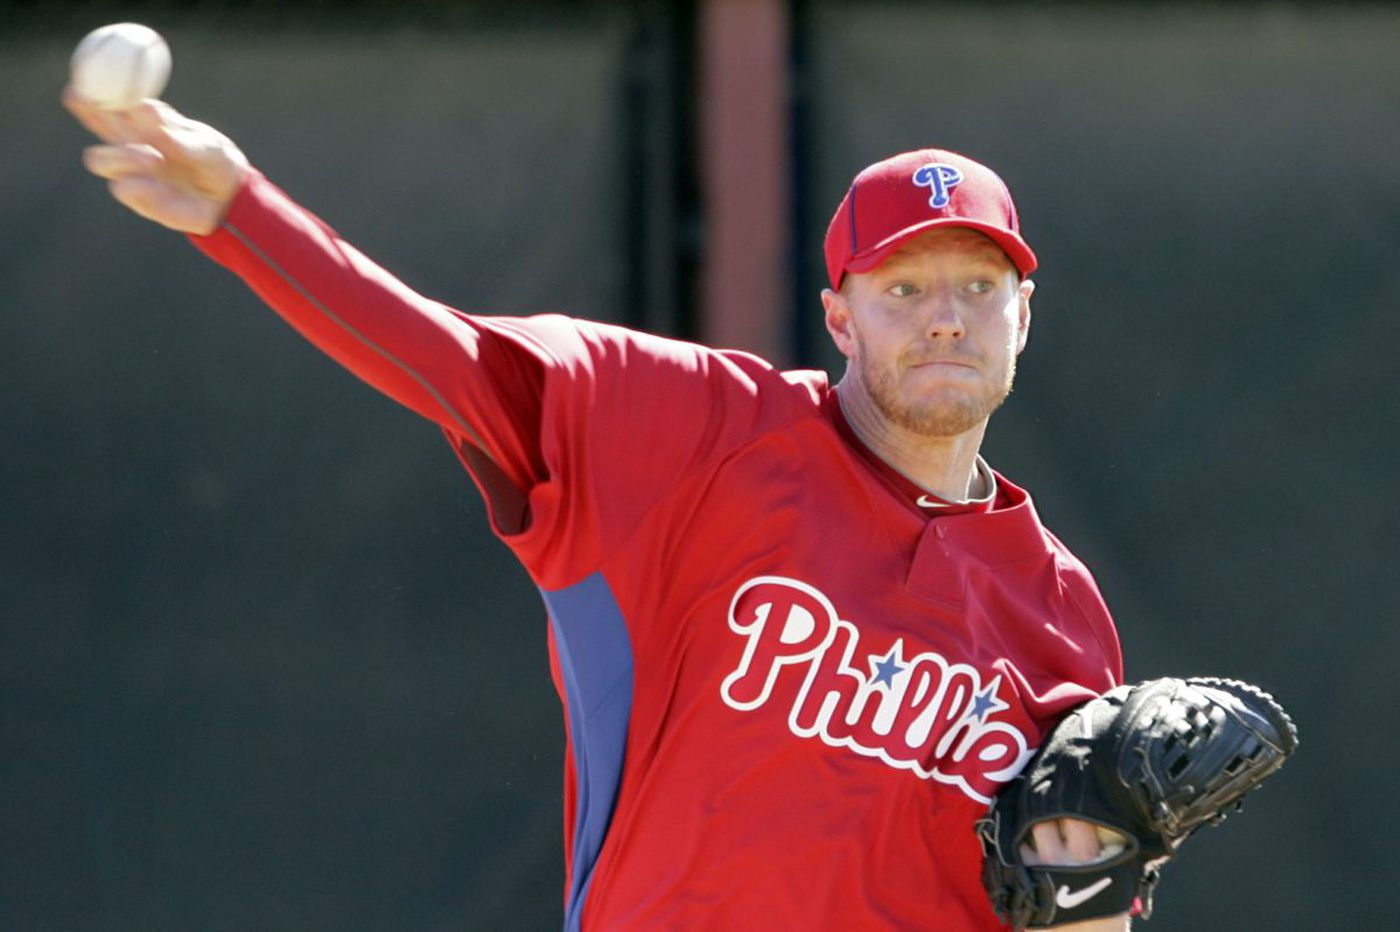 Roy Halladay shined briefly for Phillies but earned the city's love | Marcus Hayes